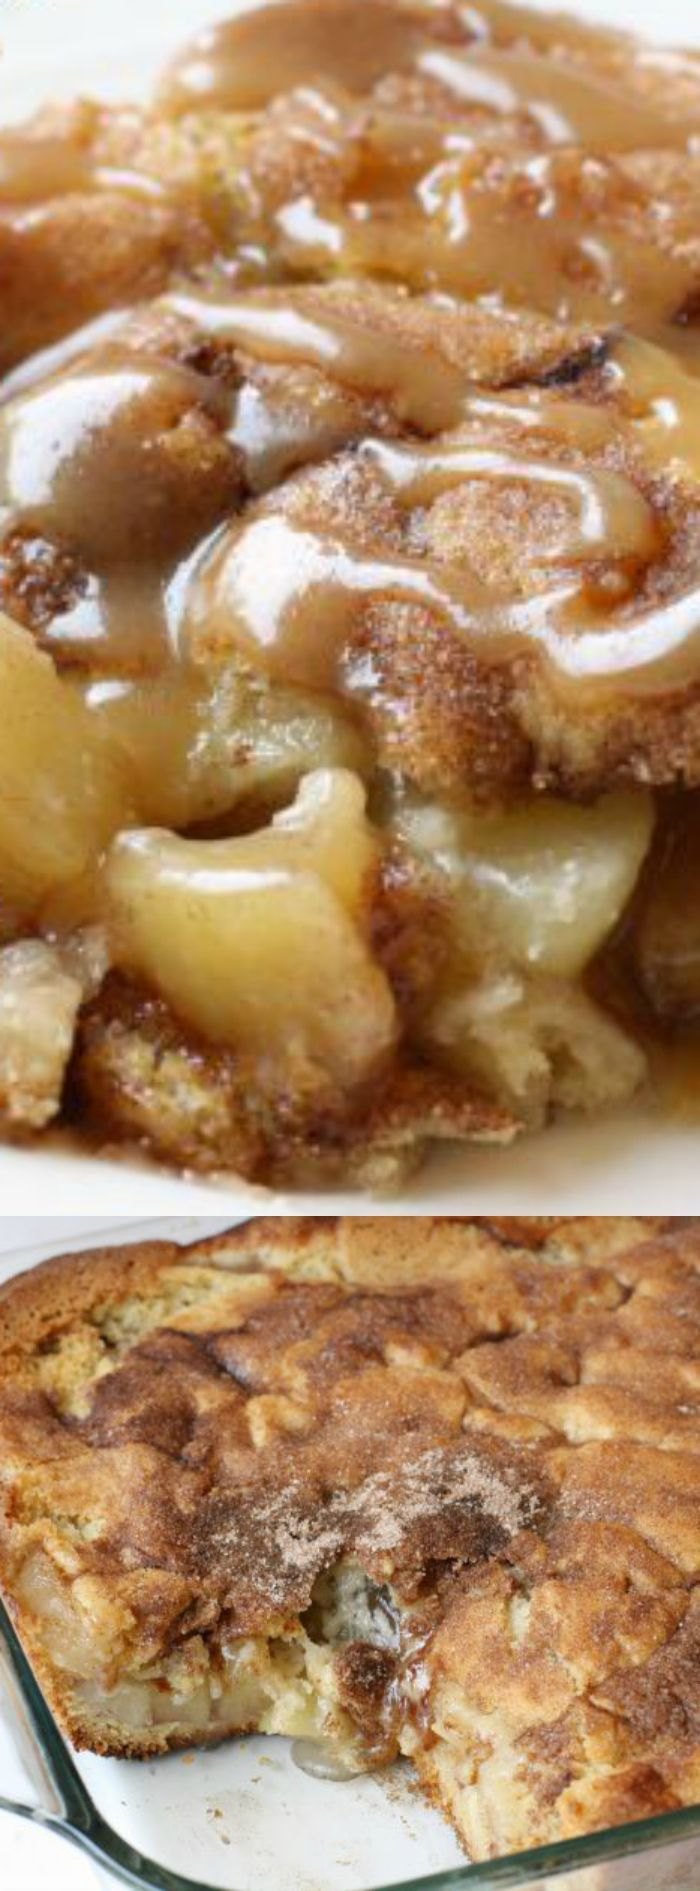 This Snickerdoodle Apple Cobbler recipe from Butter with a Side of Bread makes the perfect fall treat!